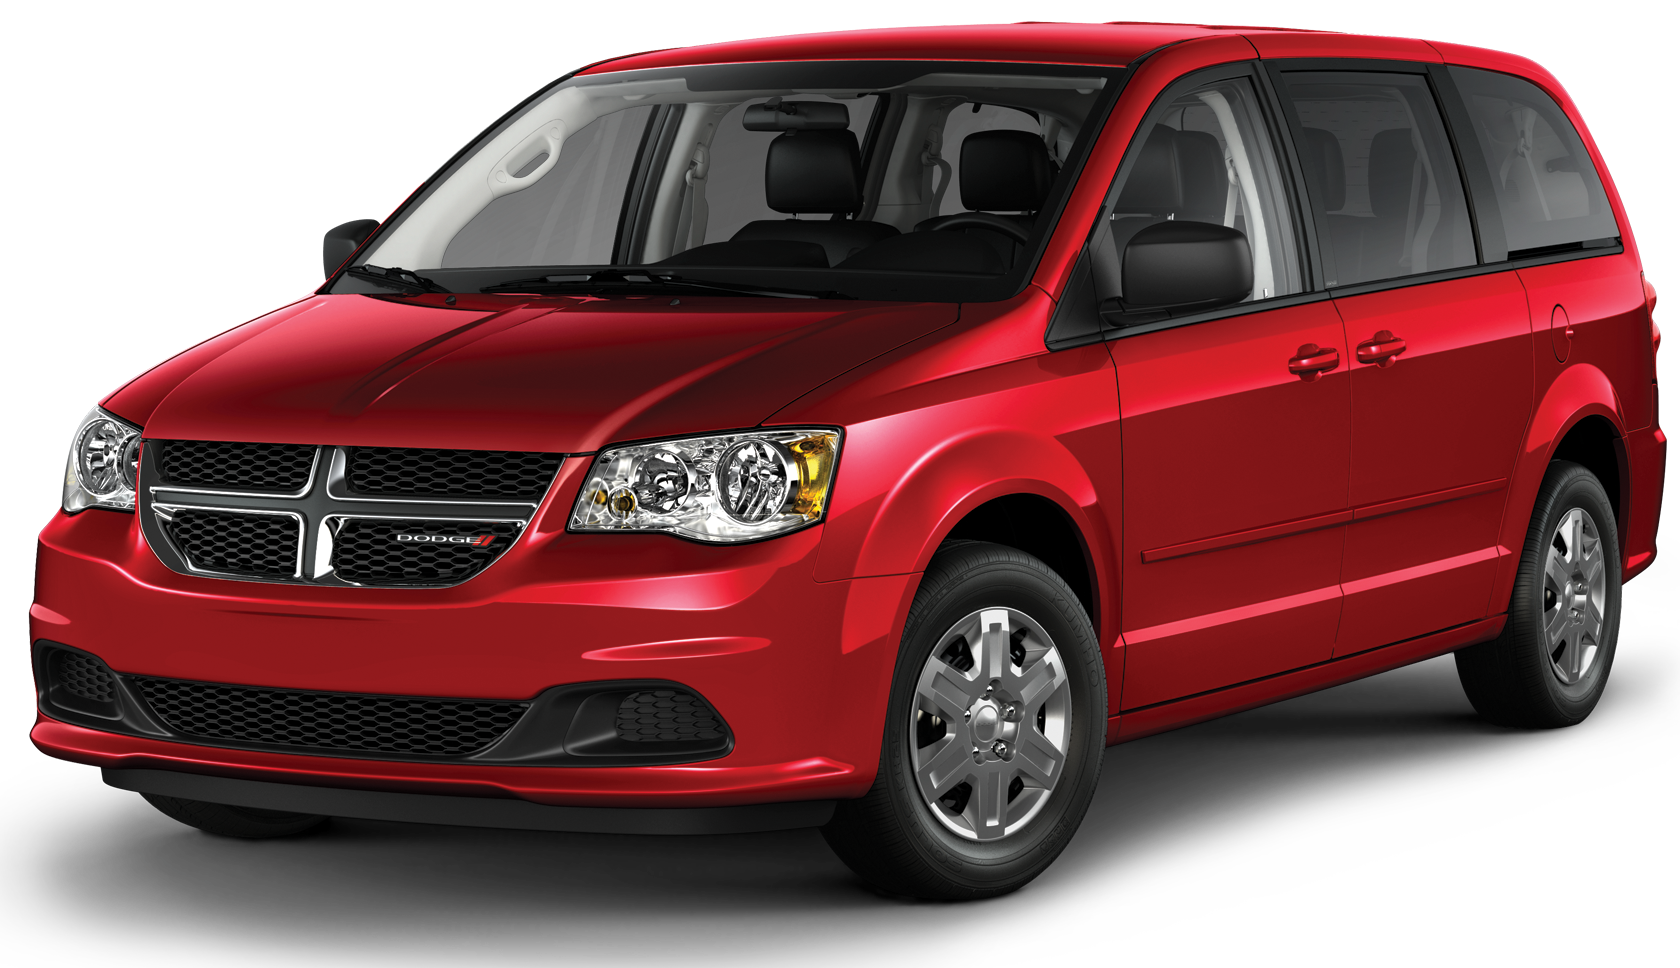 2015 chrysler town and country png. Minivan shake up vs